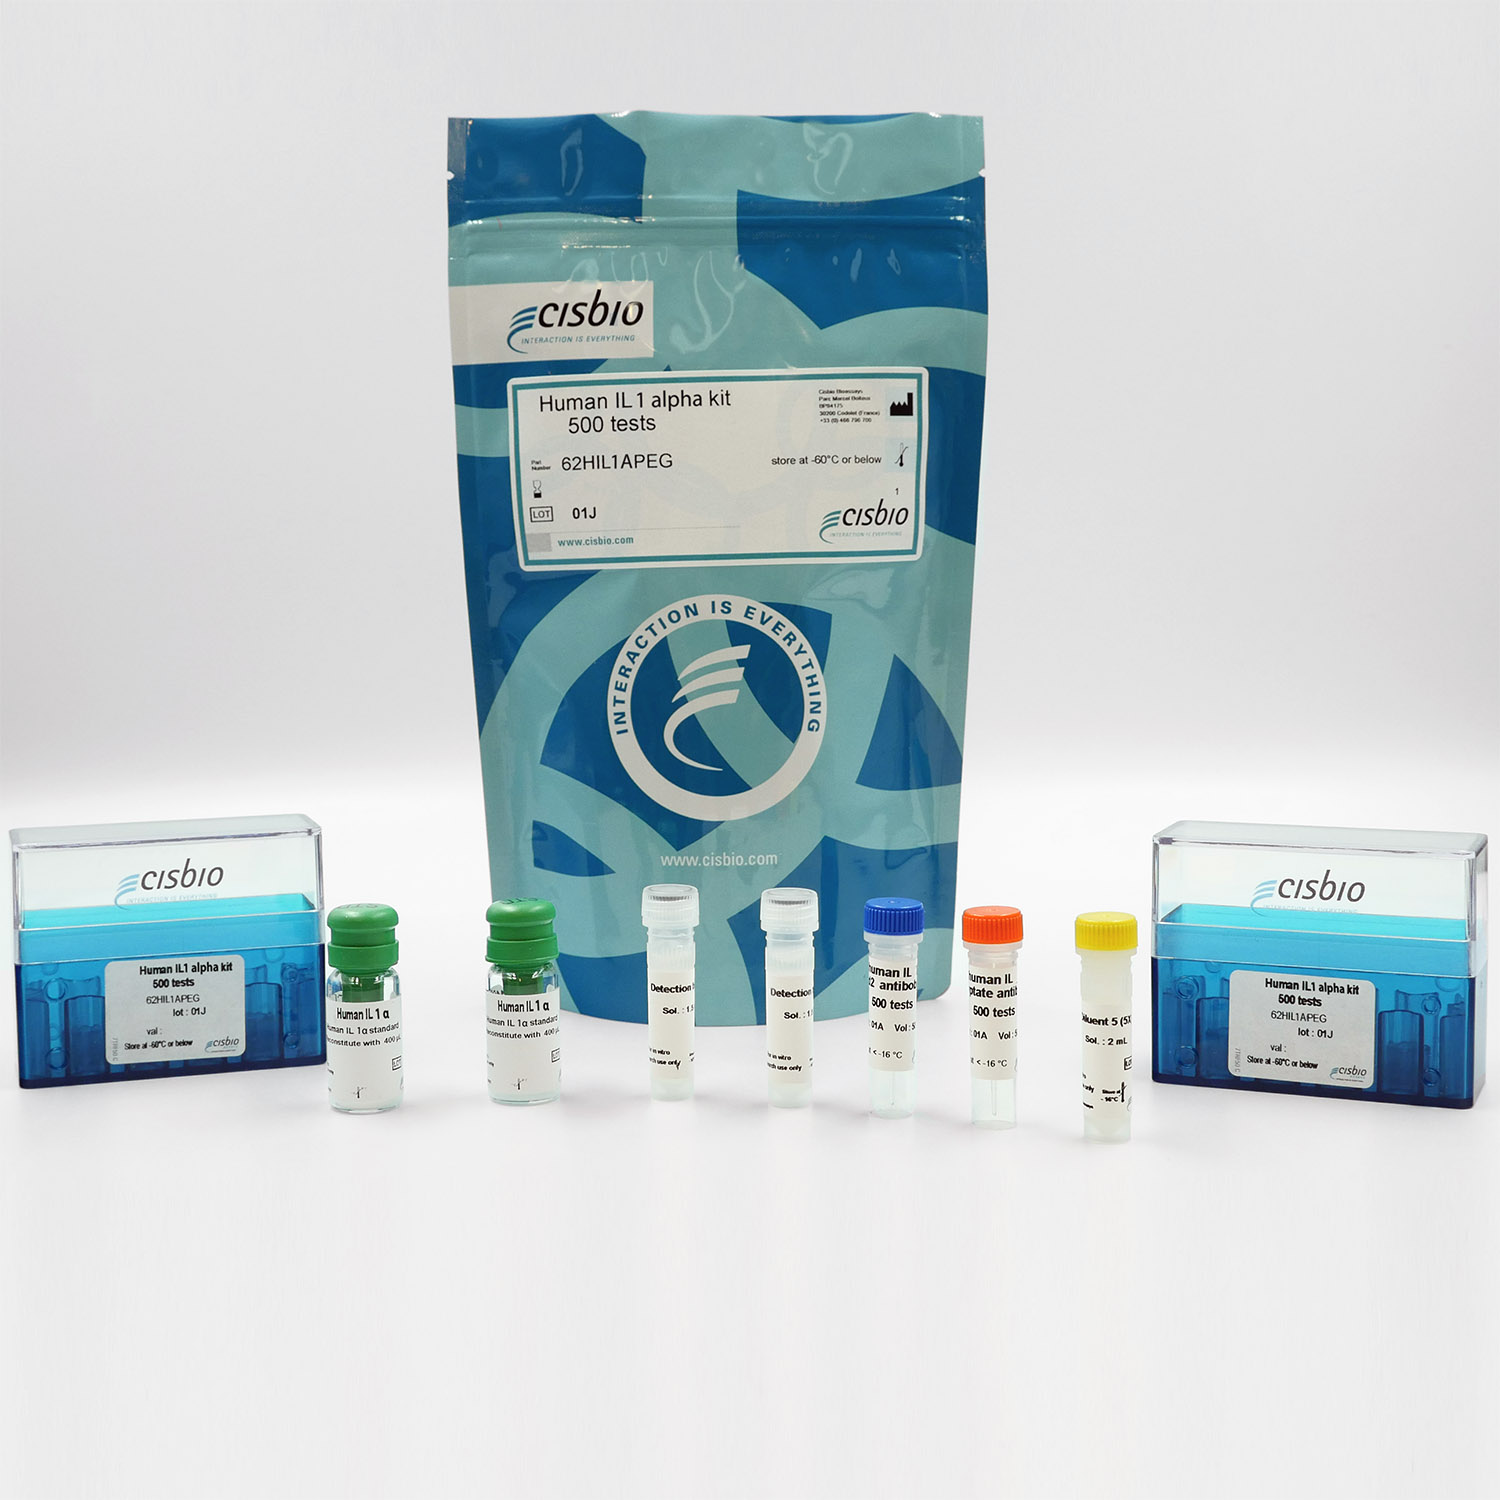 Photography of the Human IL1 alpha kit and components